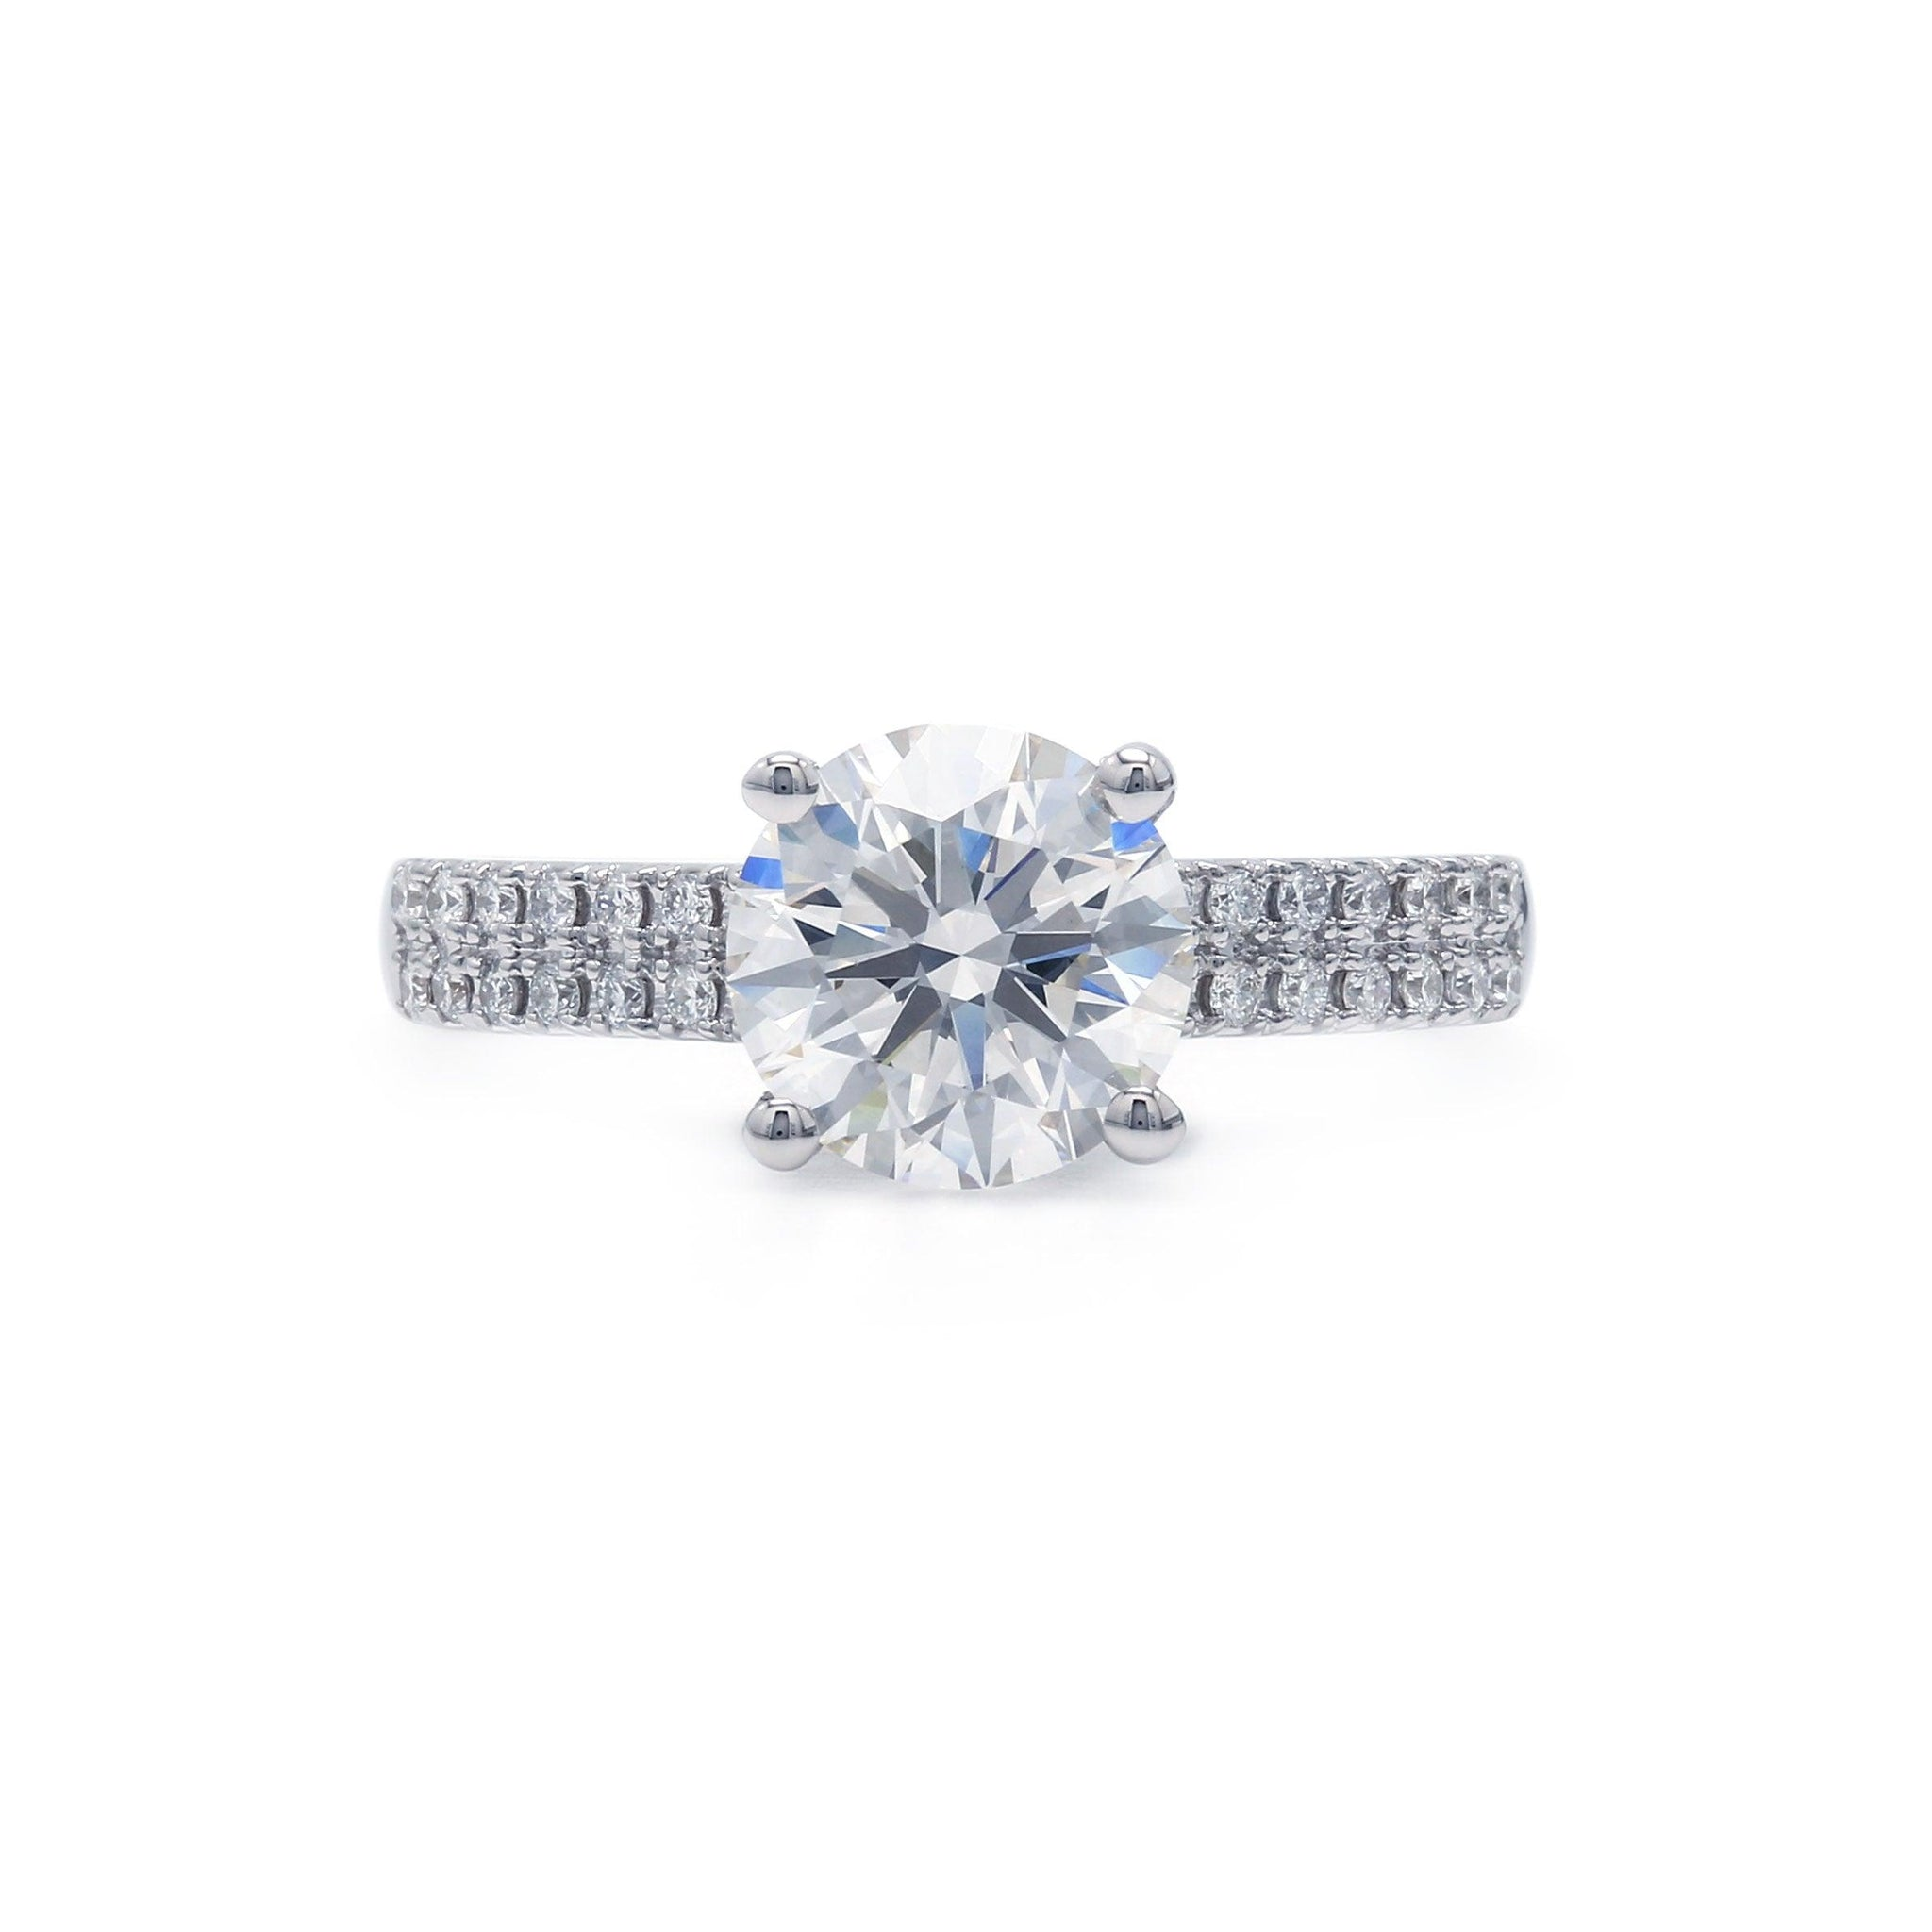 2 1/3 Ct. T.W. Lab-Grown IGI Certified Diamond 14K White Gold Ring (Center: 2.09 Ct. H VS1)